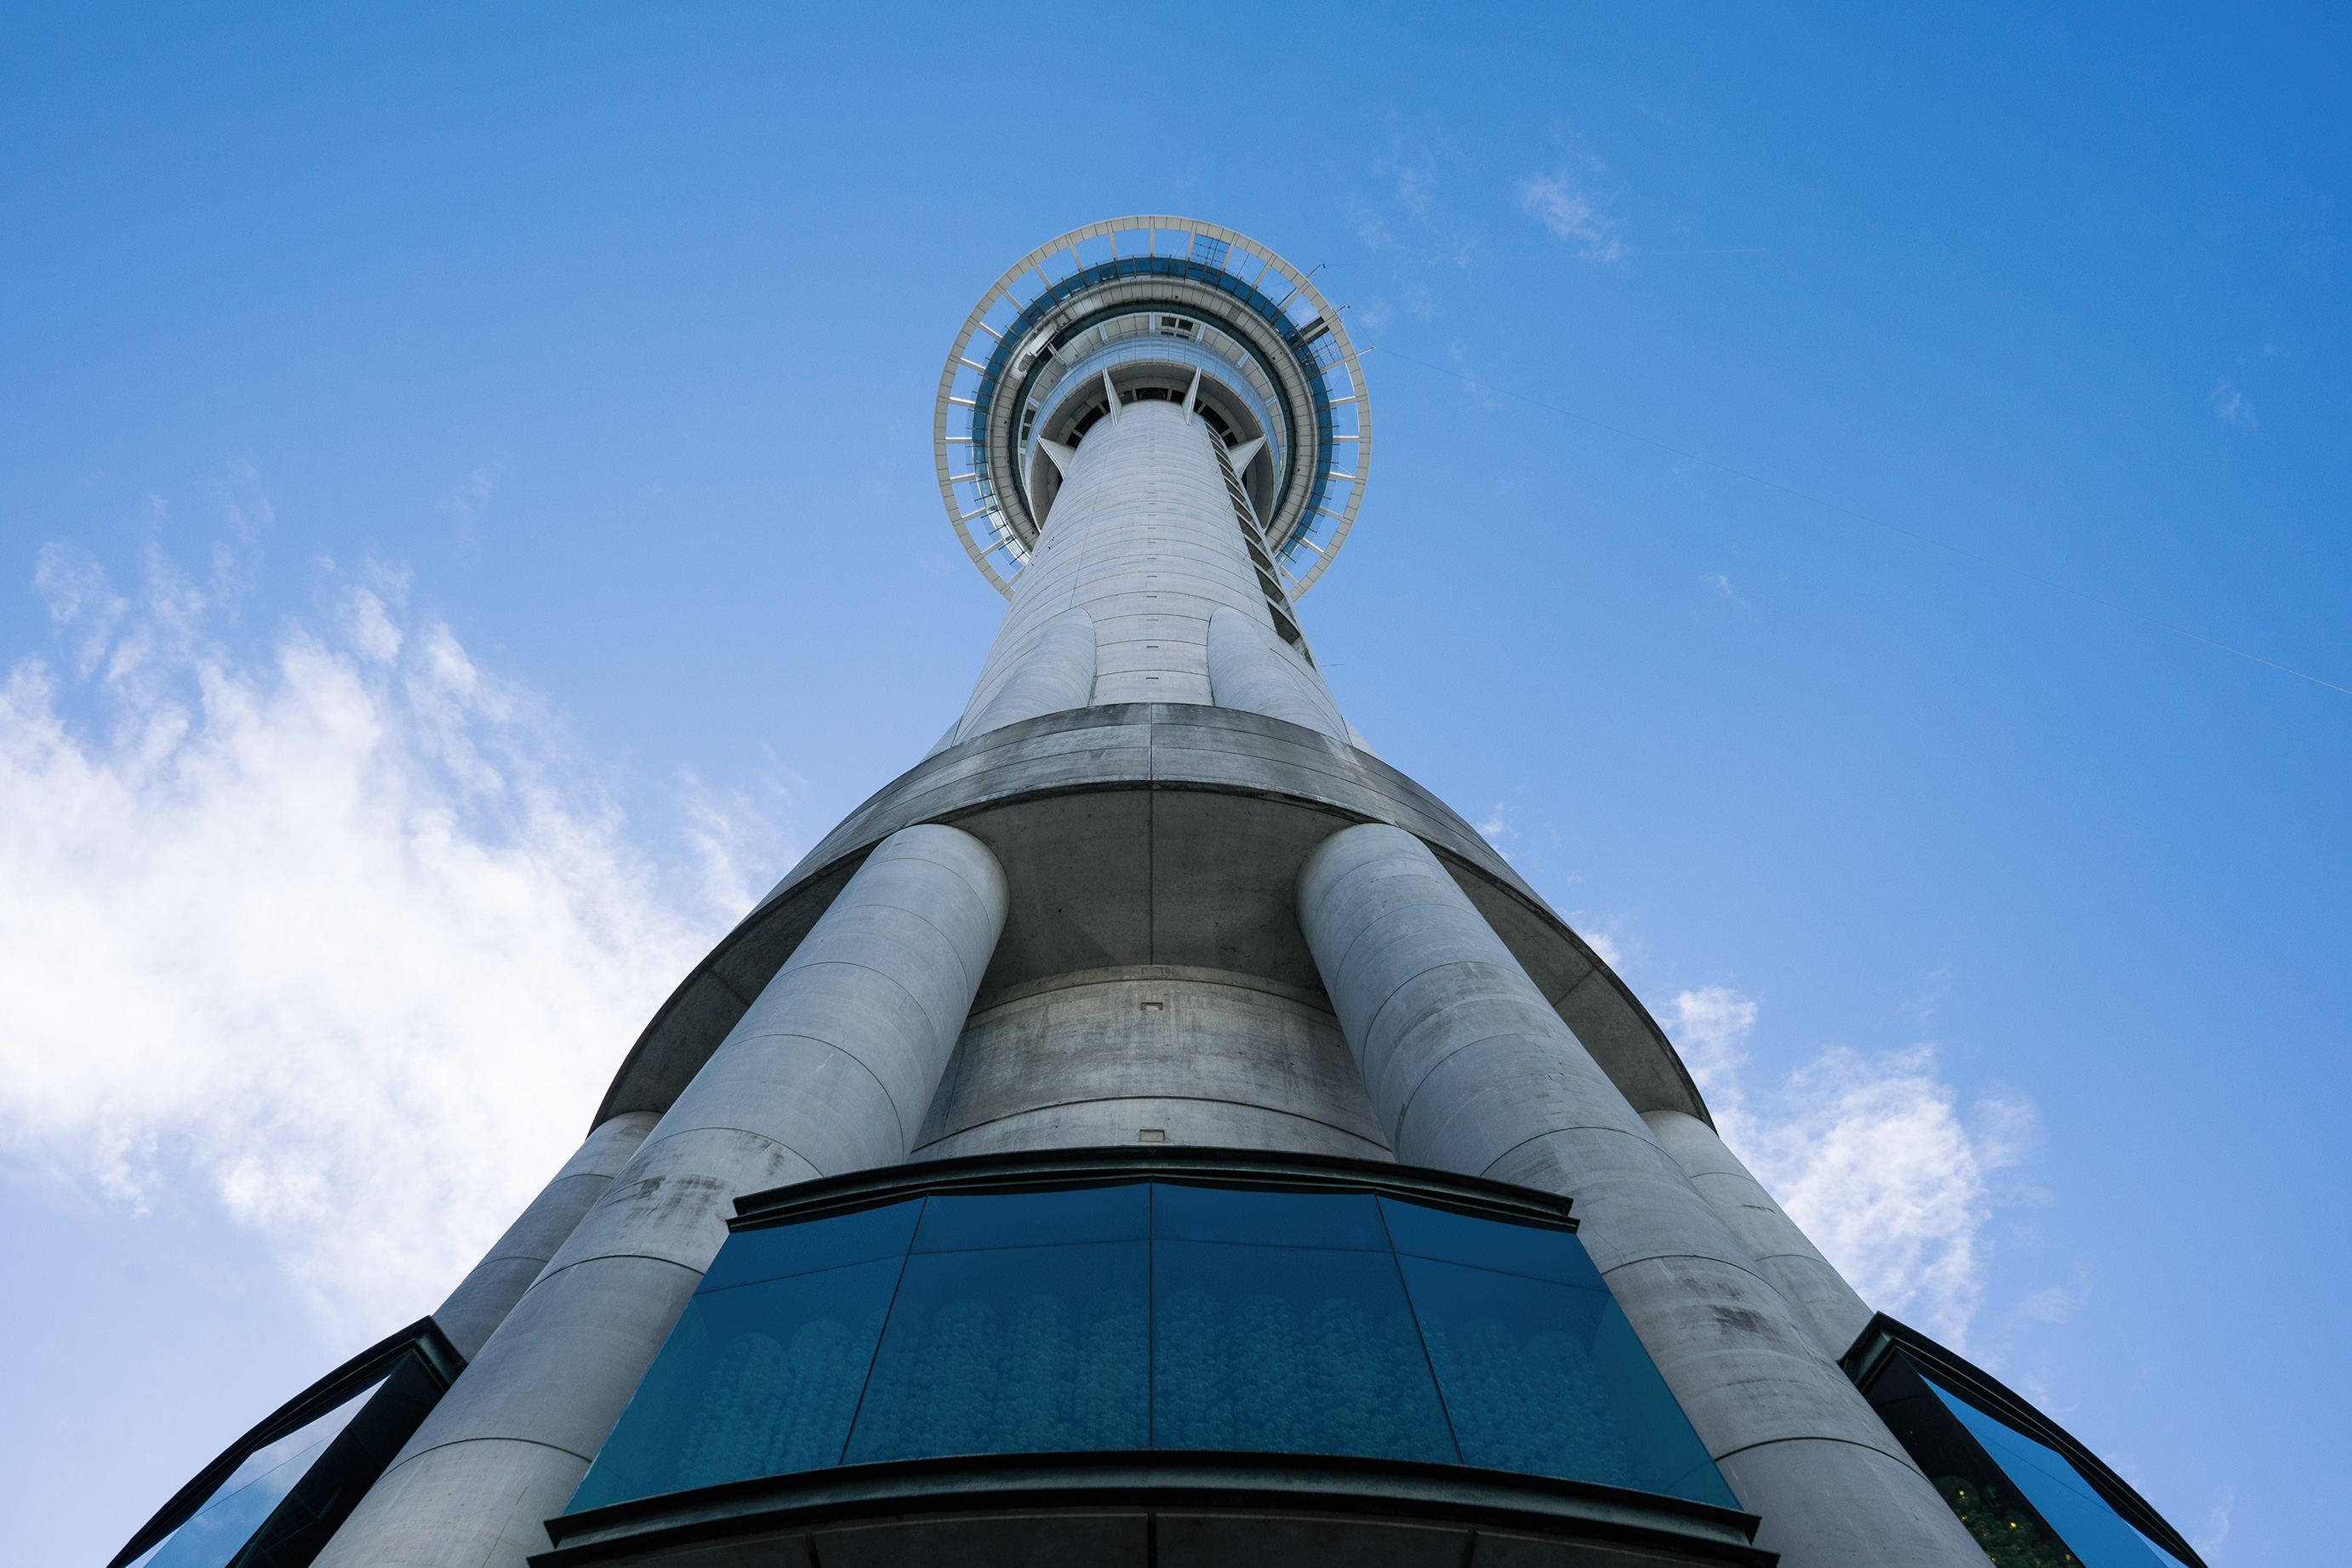 Auckland Sky Tower View From The Ground